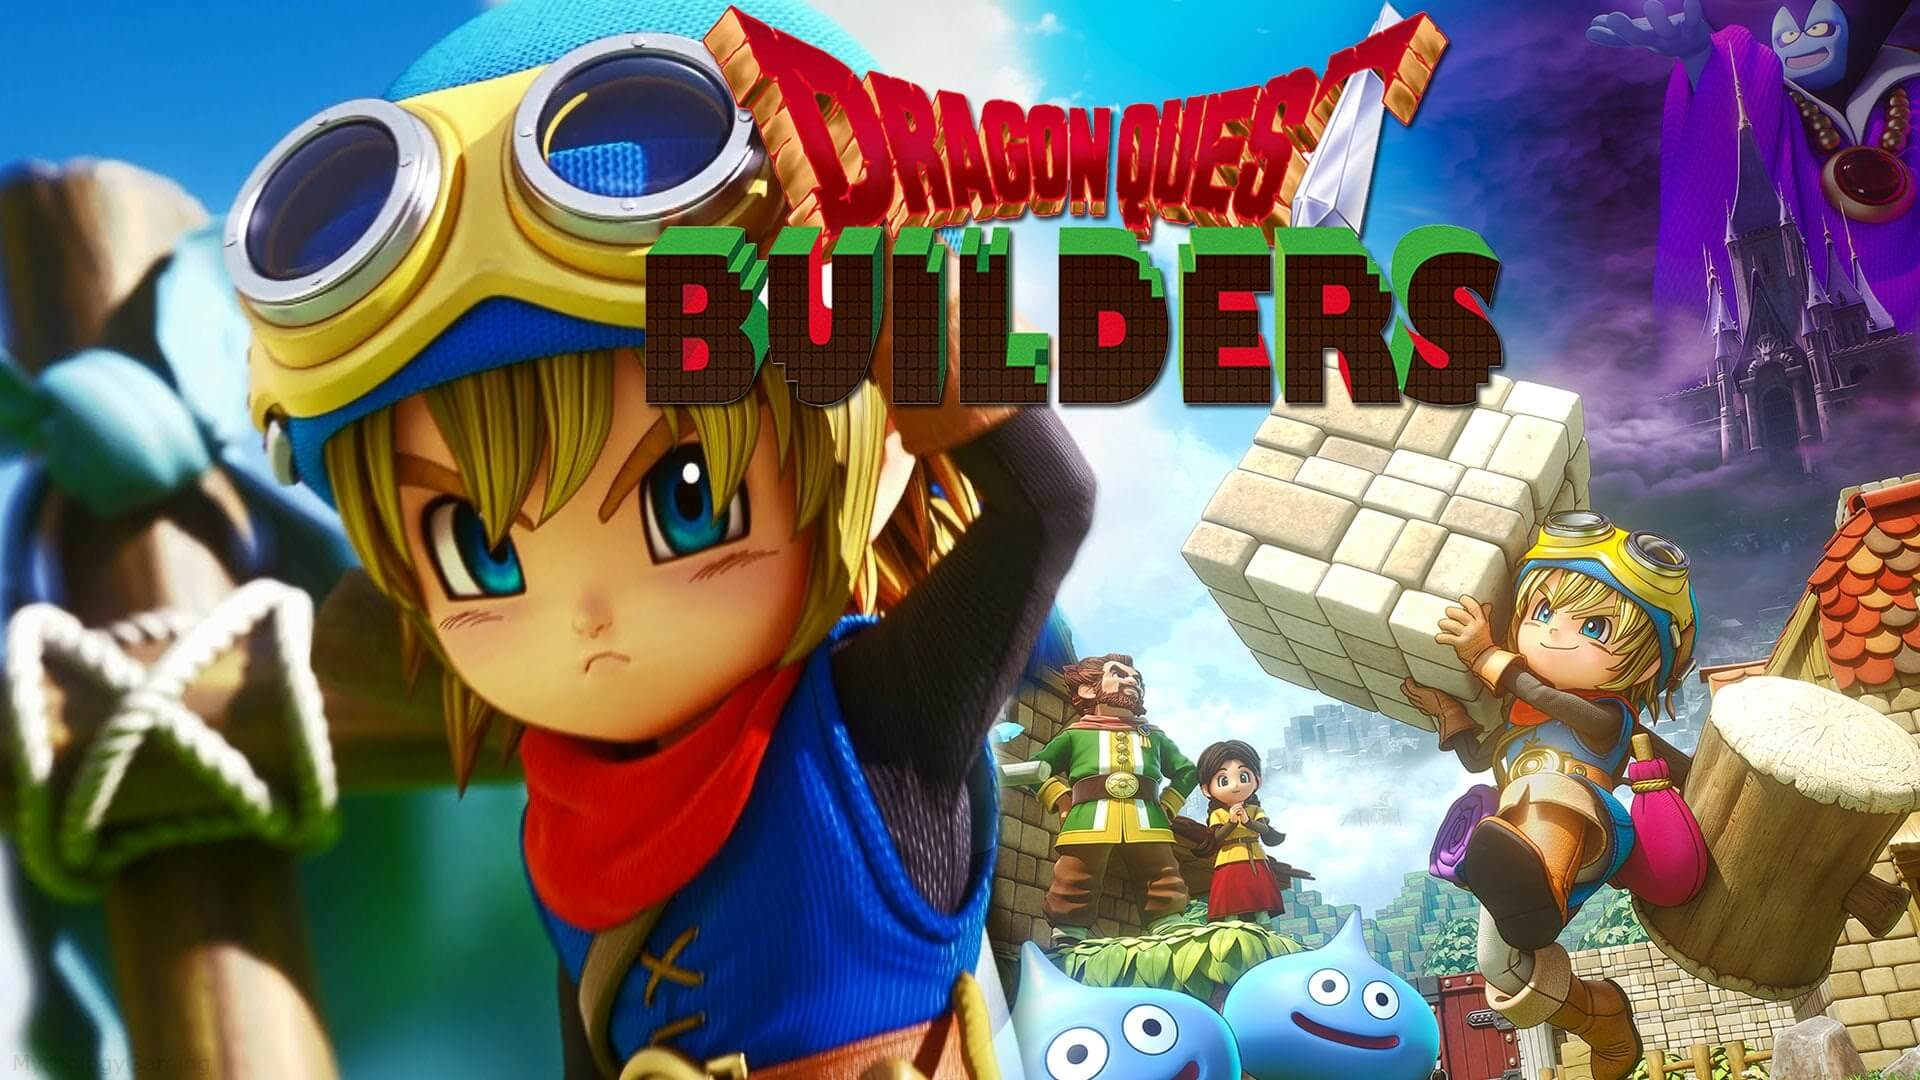 Feast Your Eyes on Dragon Quest Builders for Switch